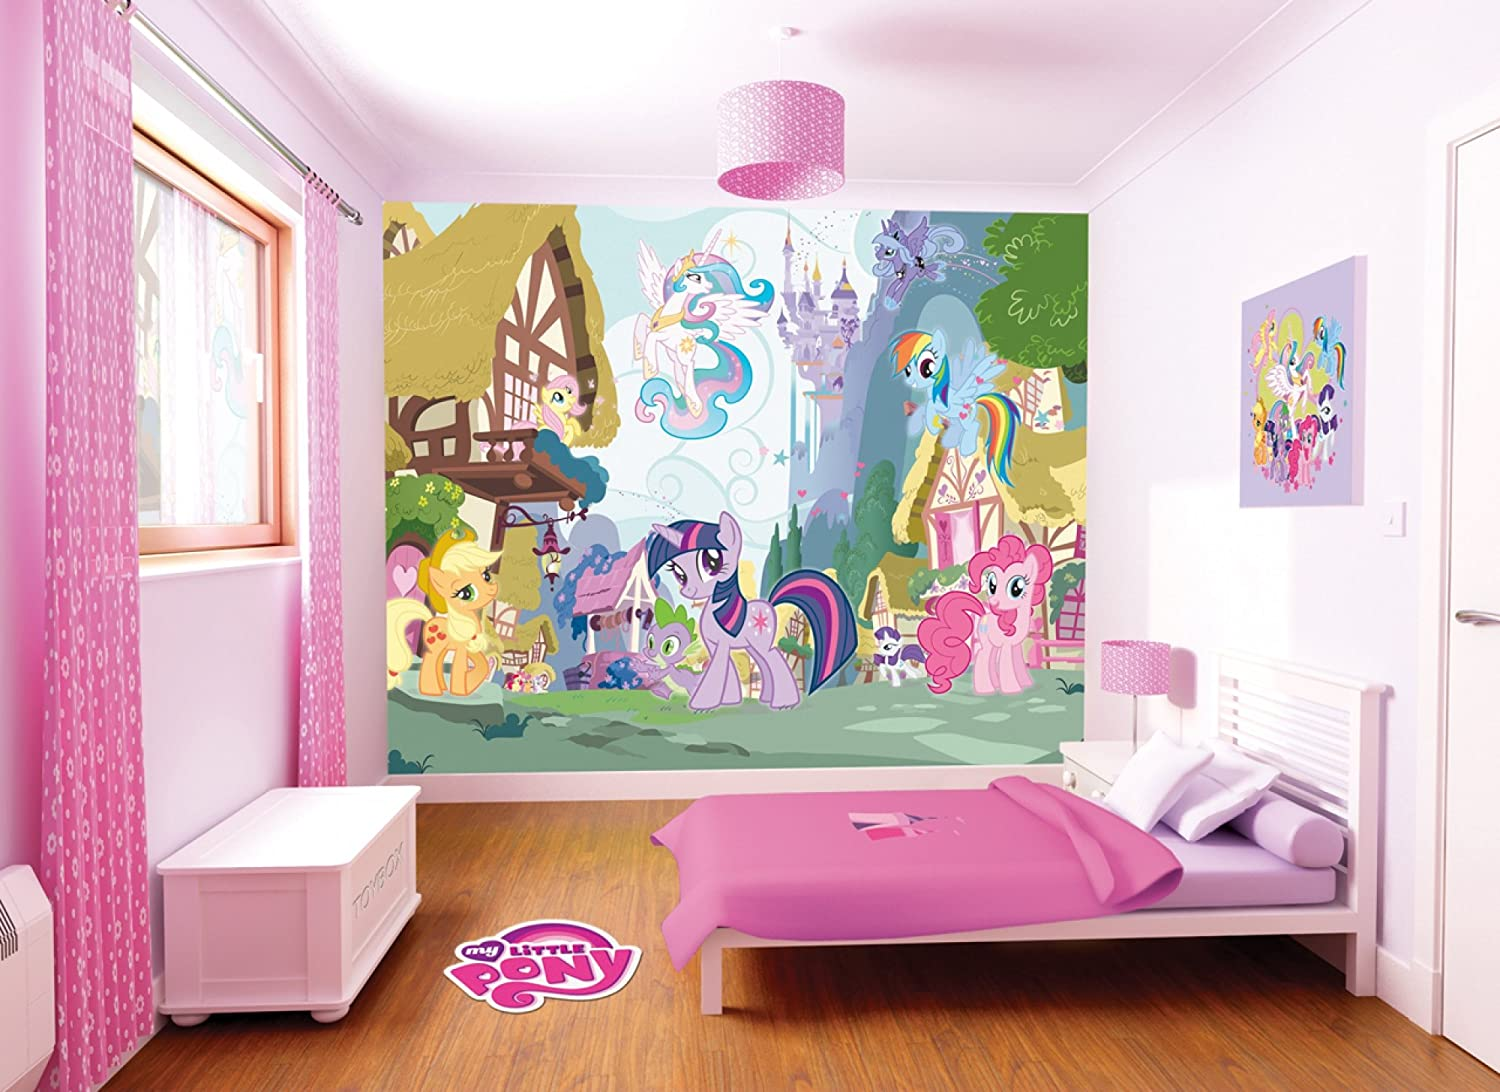 Charming Walltastic My Little Pony Wallpaper Mural, 8 X 10ft: Amazon.co.uk: Kitchen  U0026 Home Part 23